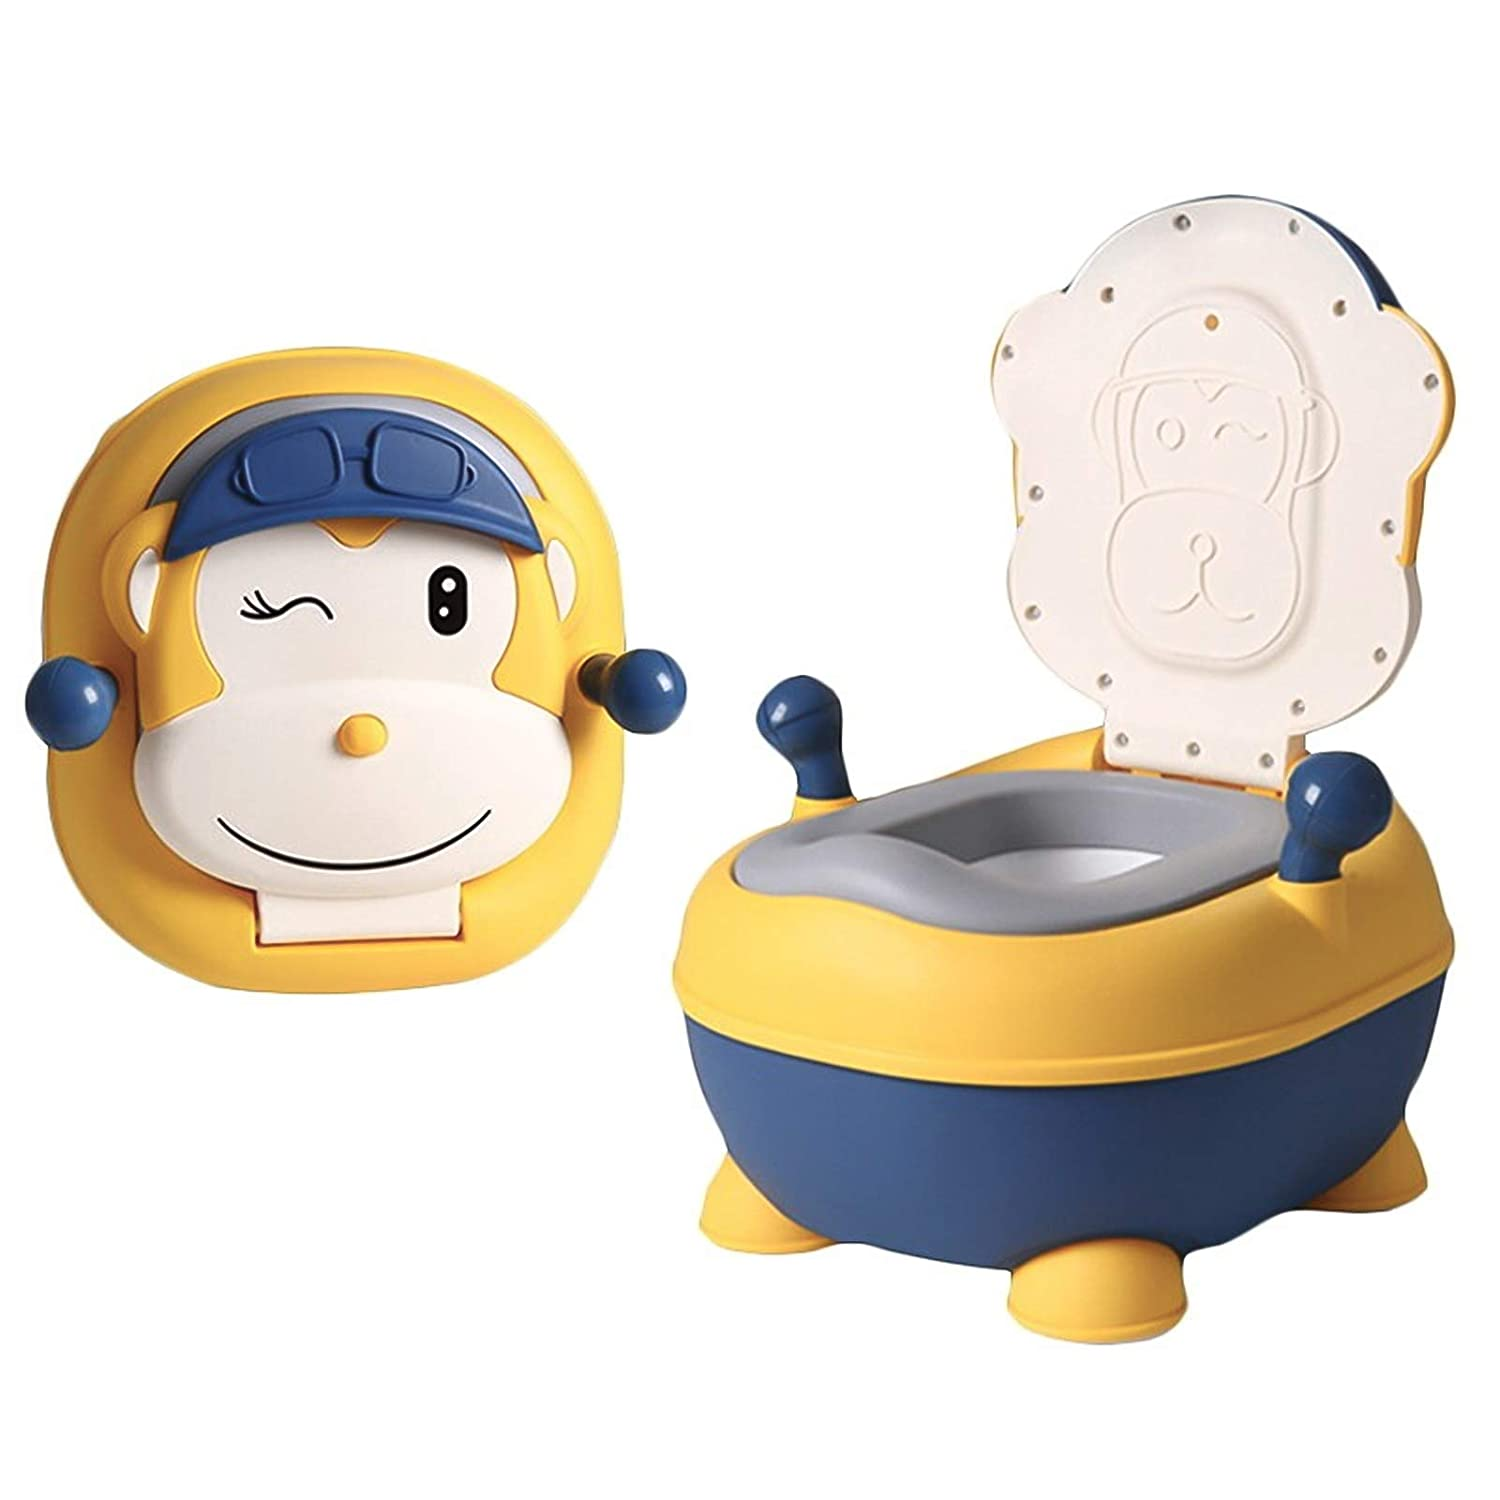 Potty Training Seat Toddlers Potty with Ergonomic Design and Anti-Splash Feature Toilet Trainer Easy to Clean Potty Toilet for Boys and Girls